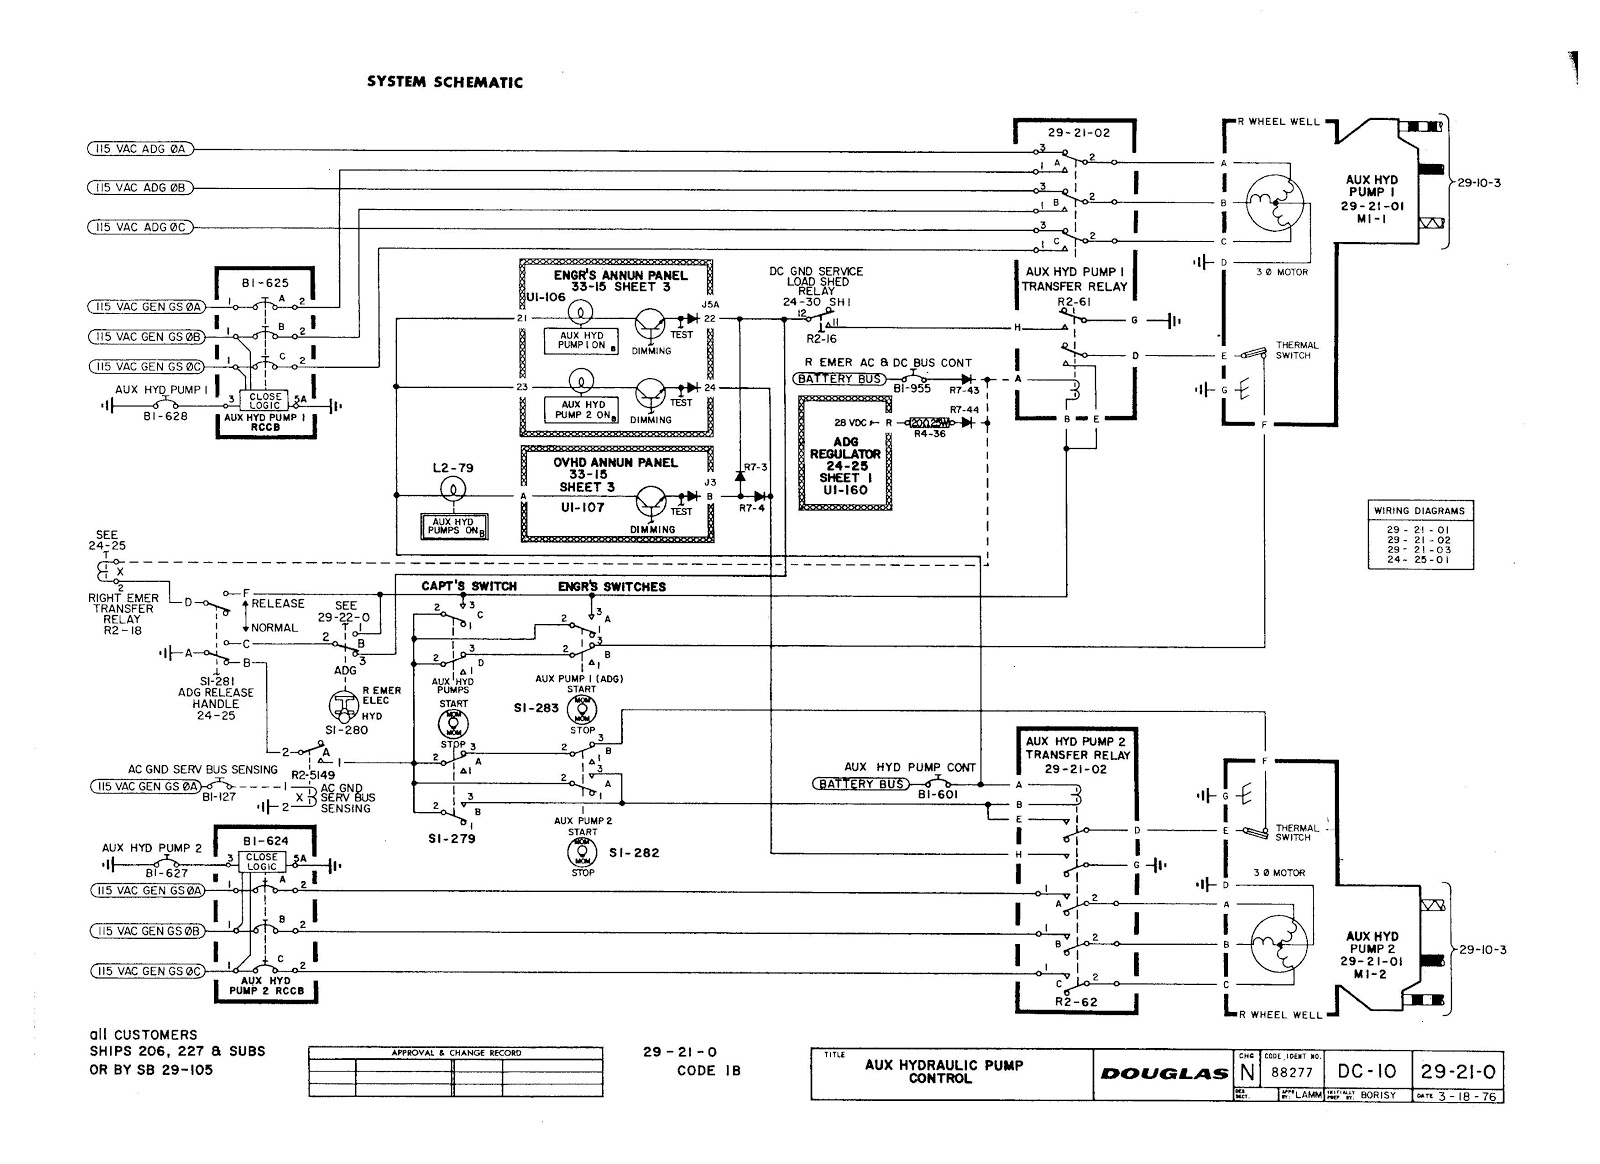 wiring diagram for 1996 club car 48 volt part 66 virtual school: october 2012 #6